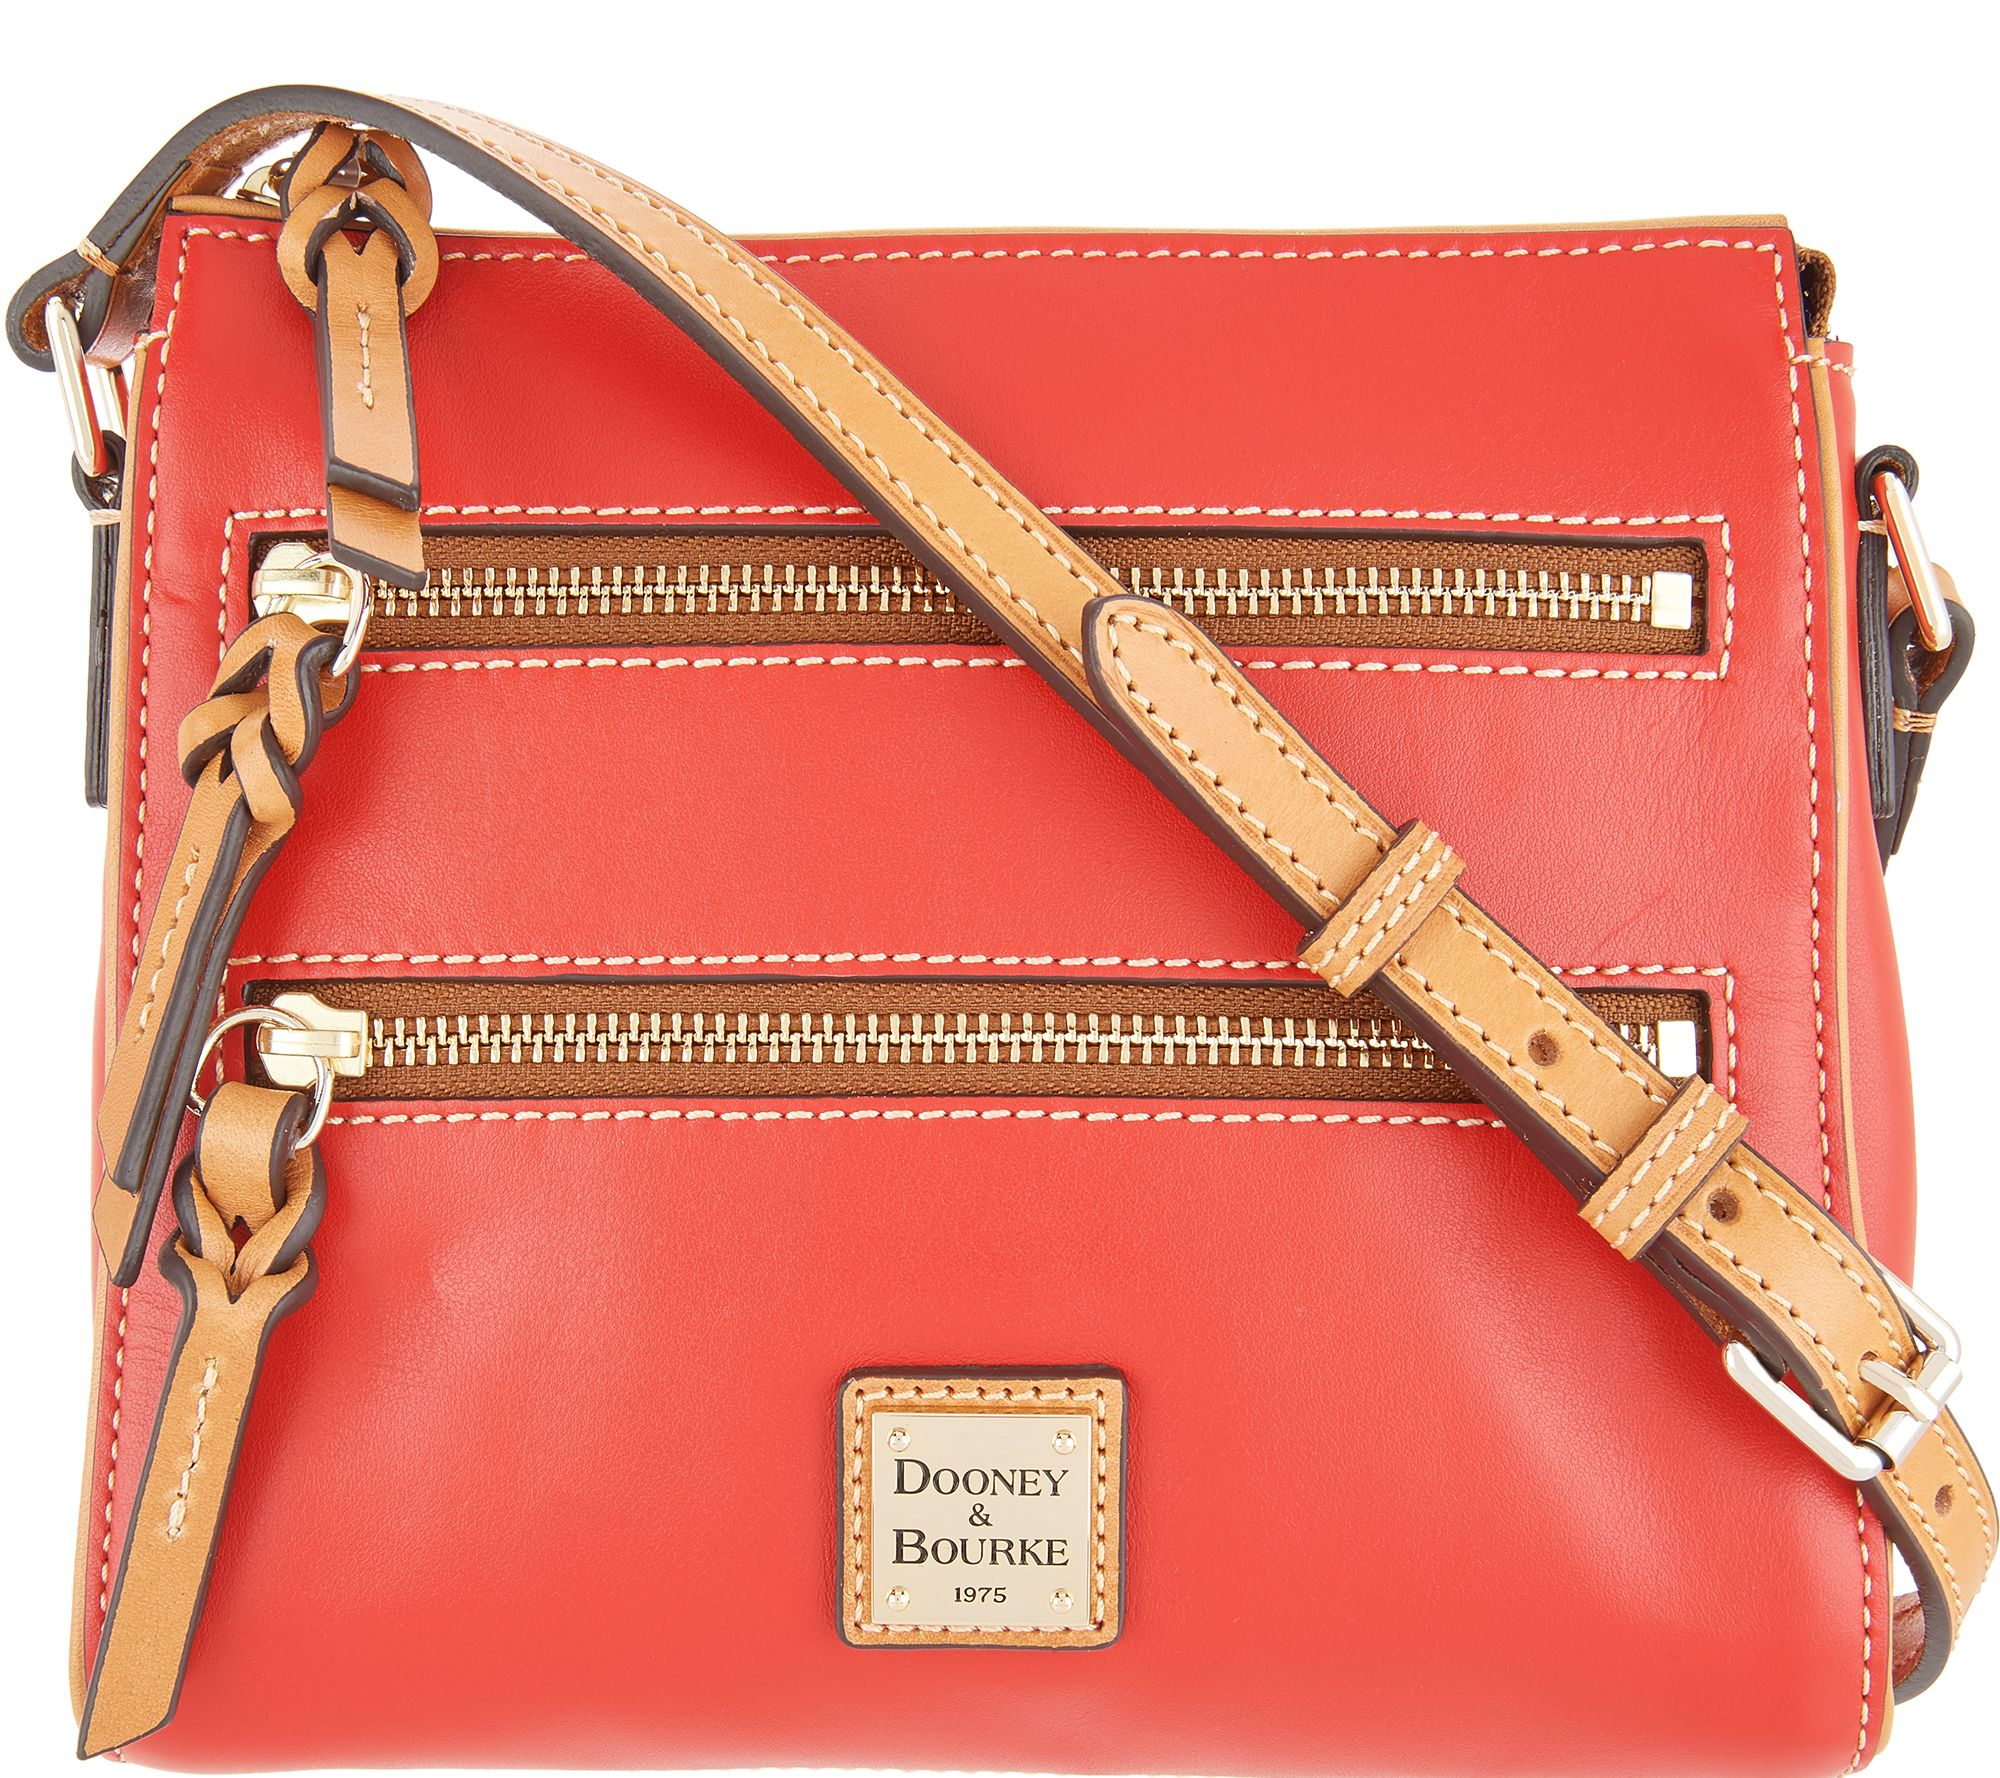 dd682e6966 Dooney   Bourke Smooth Leather Triple Zip Crossbody - Peyton - Page 1 —  QVC.com